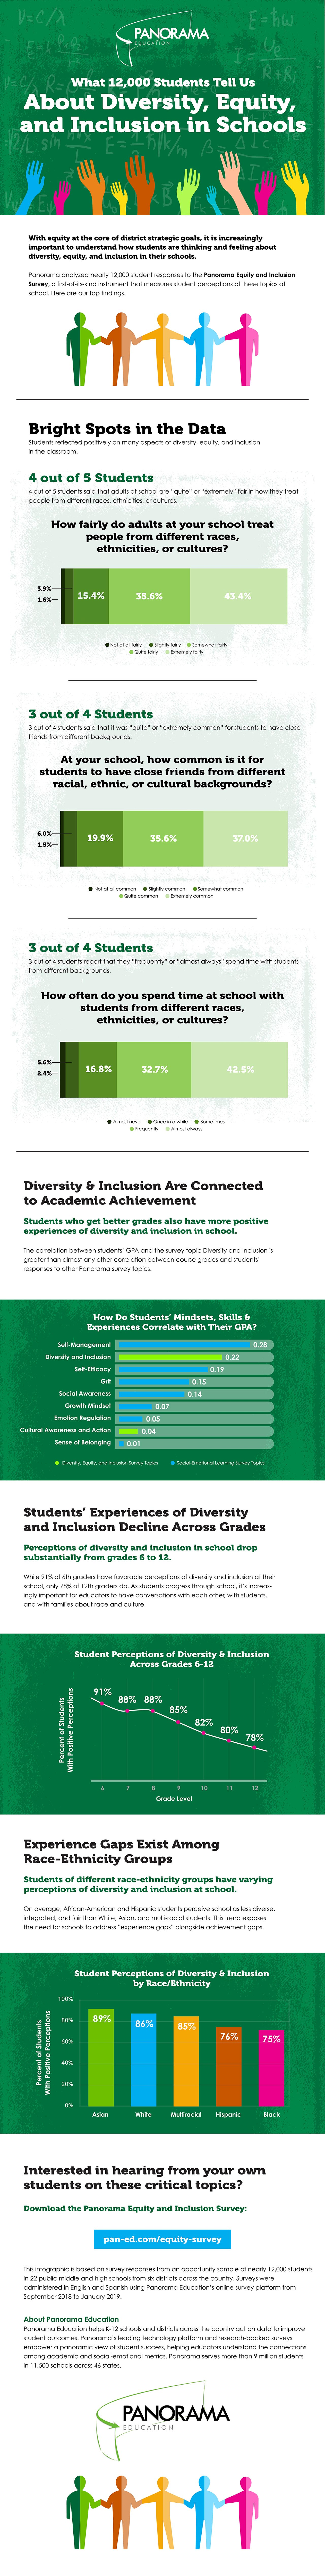 Equity and Inclusion Infographic